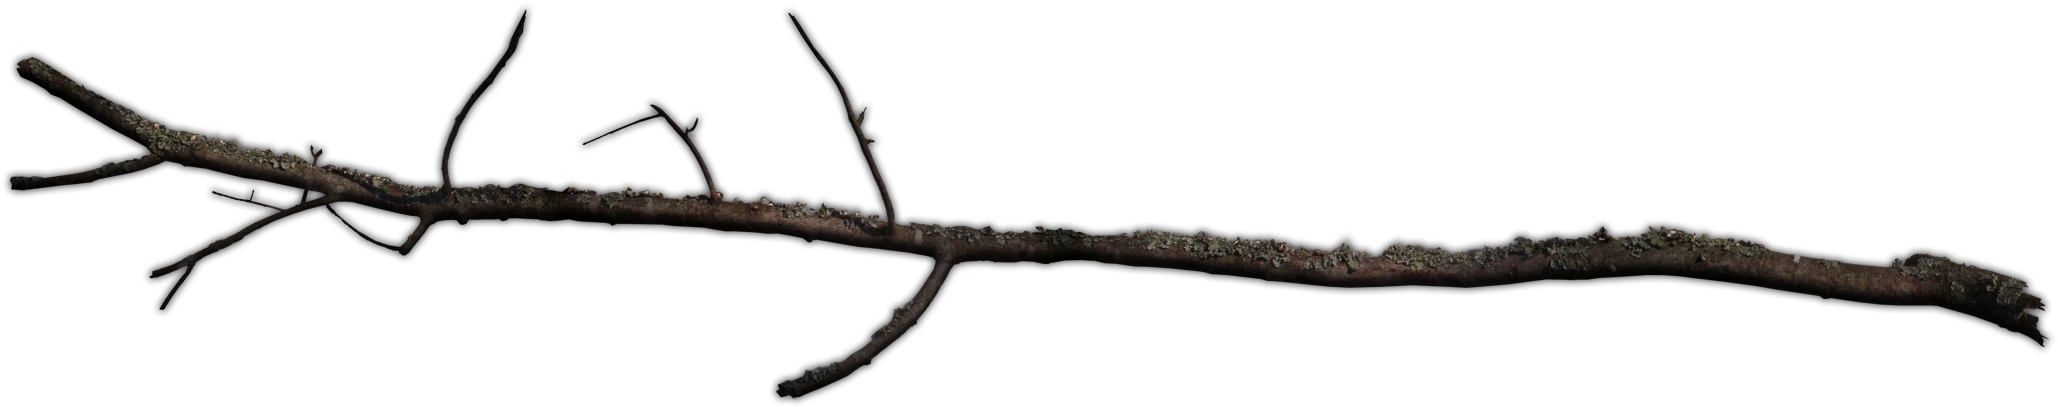 Twig stick png. Download hd dundjinni mapping